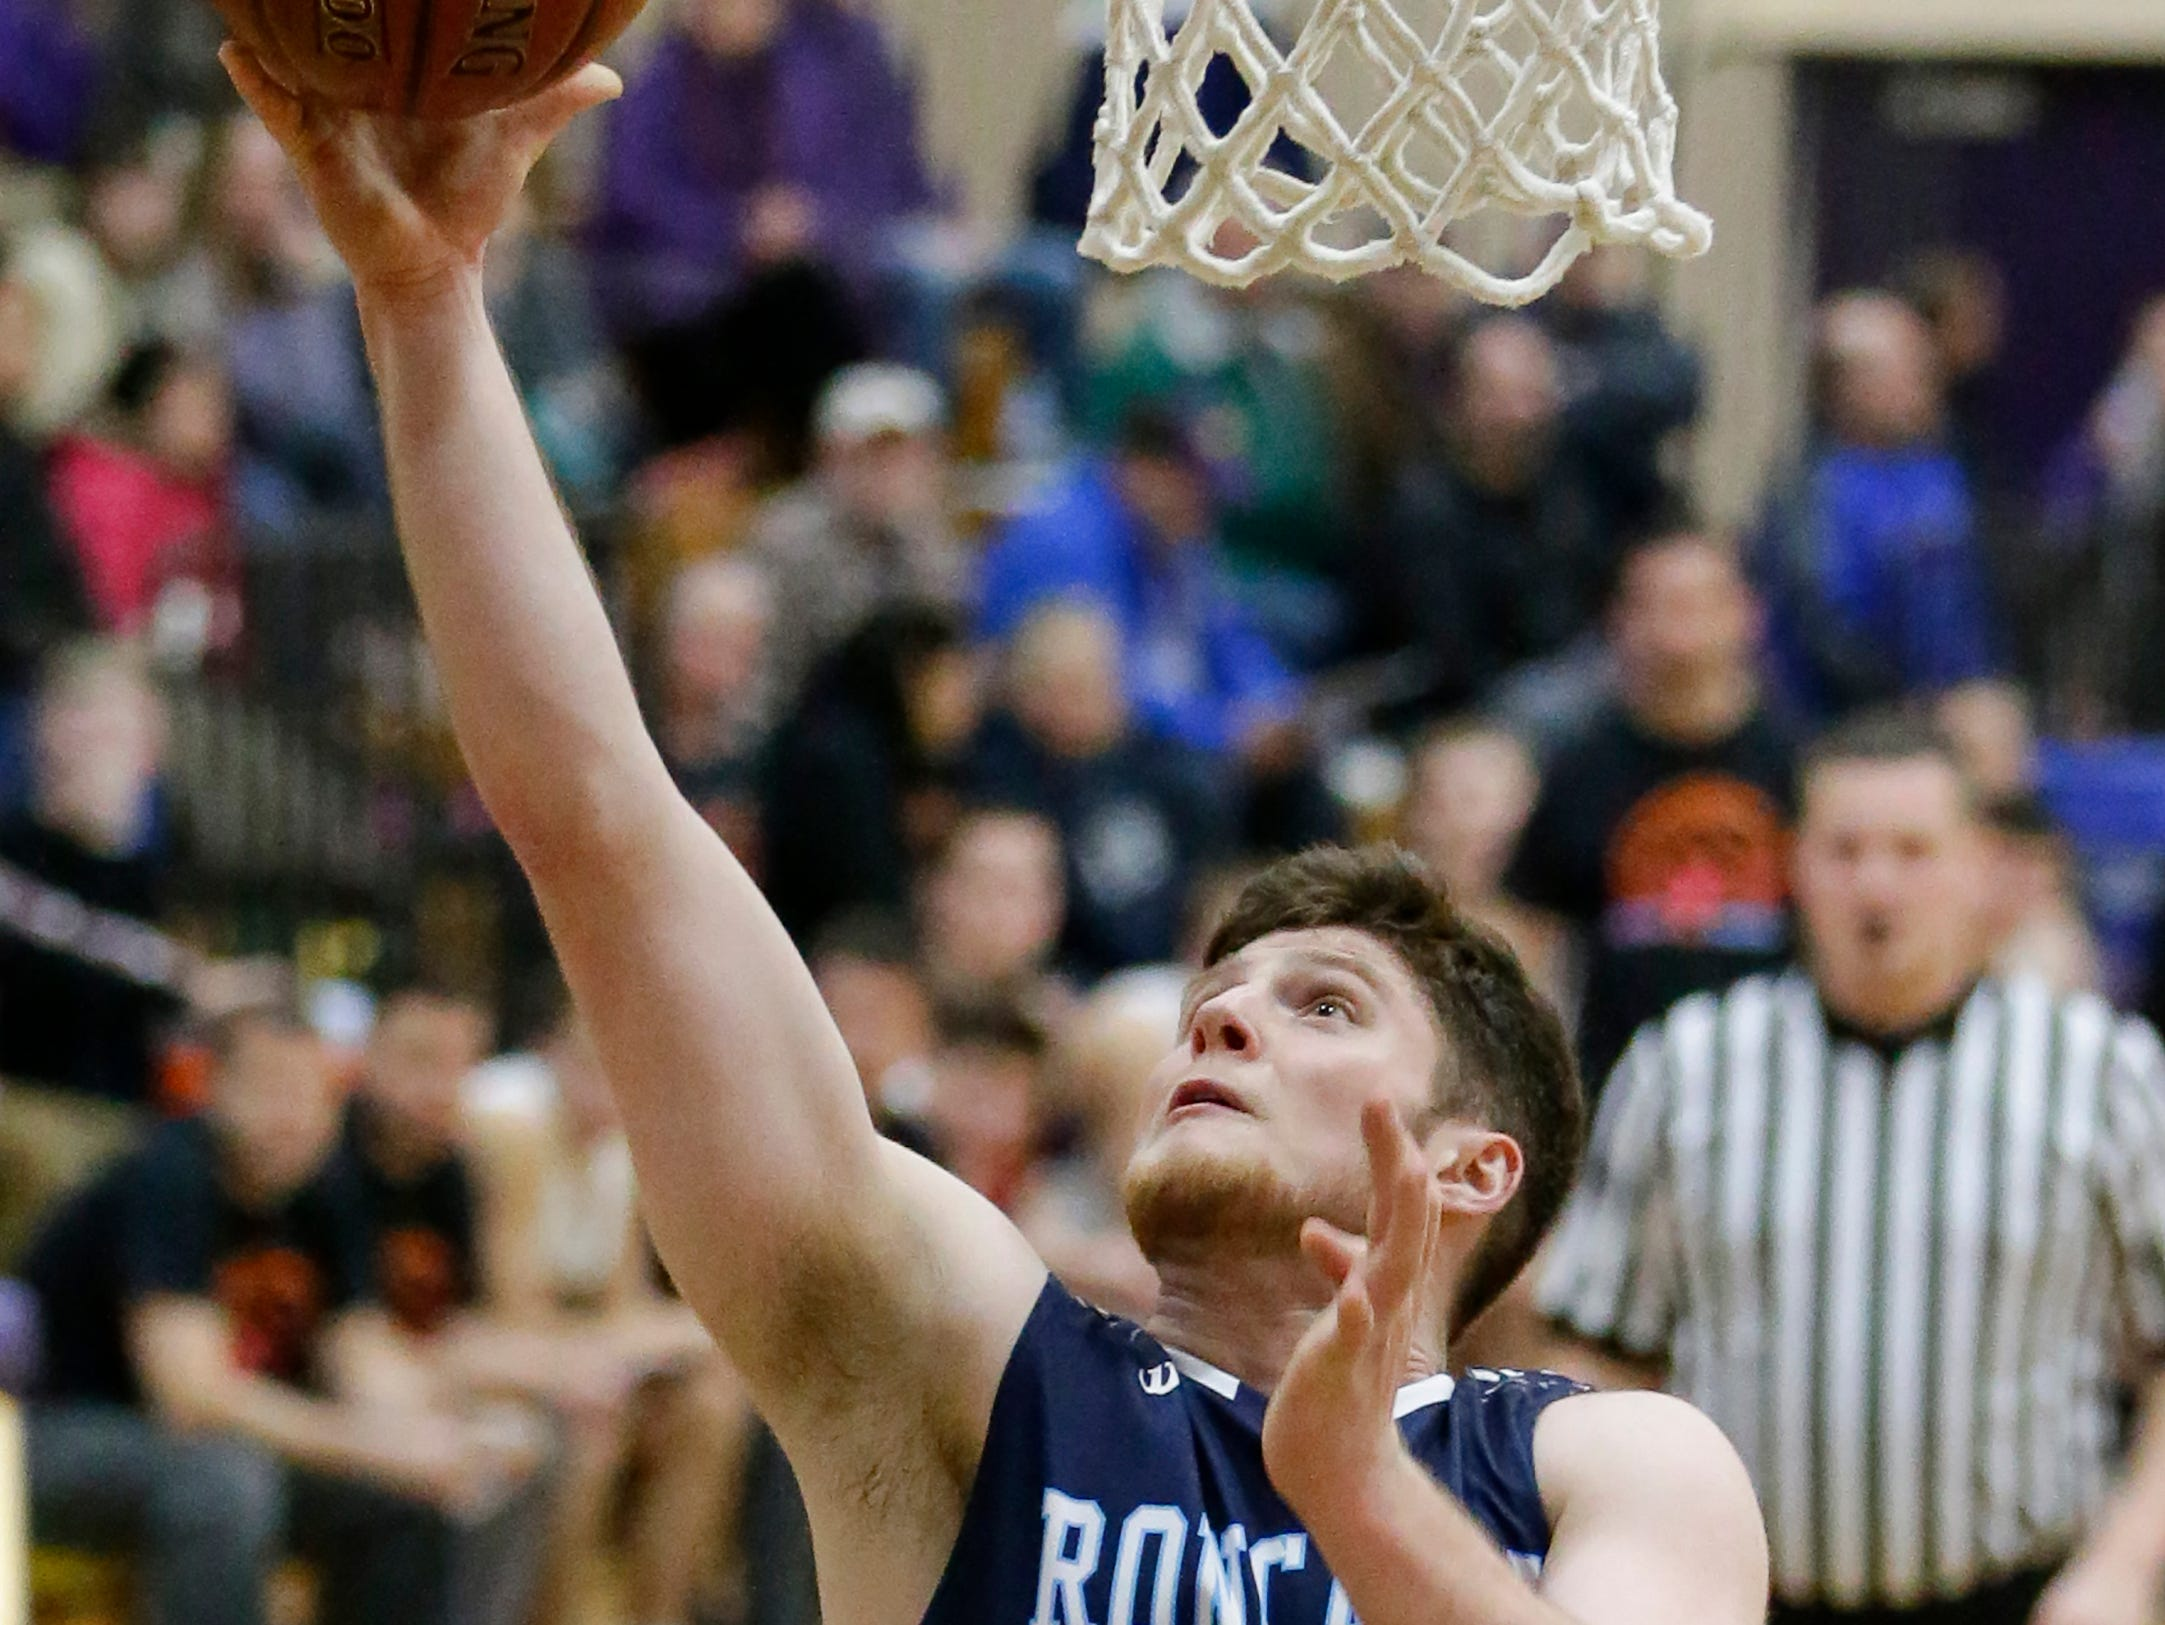 Roncalli's David Heinzen (33) shoots against Two Rivers at Two Rivers High School Friday, February 1, 2019, in Two Rivers, Wis. Joshua Clark/USA TODAY NETWORK-Wisconsin